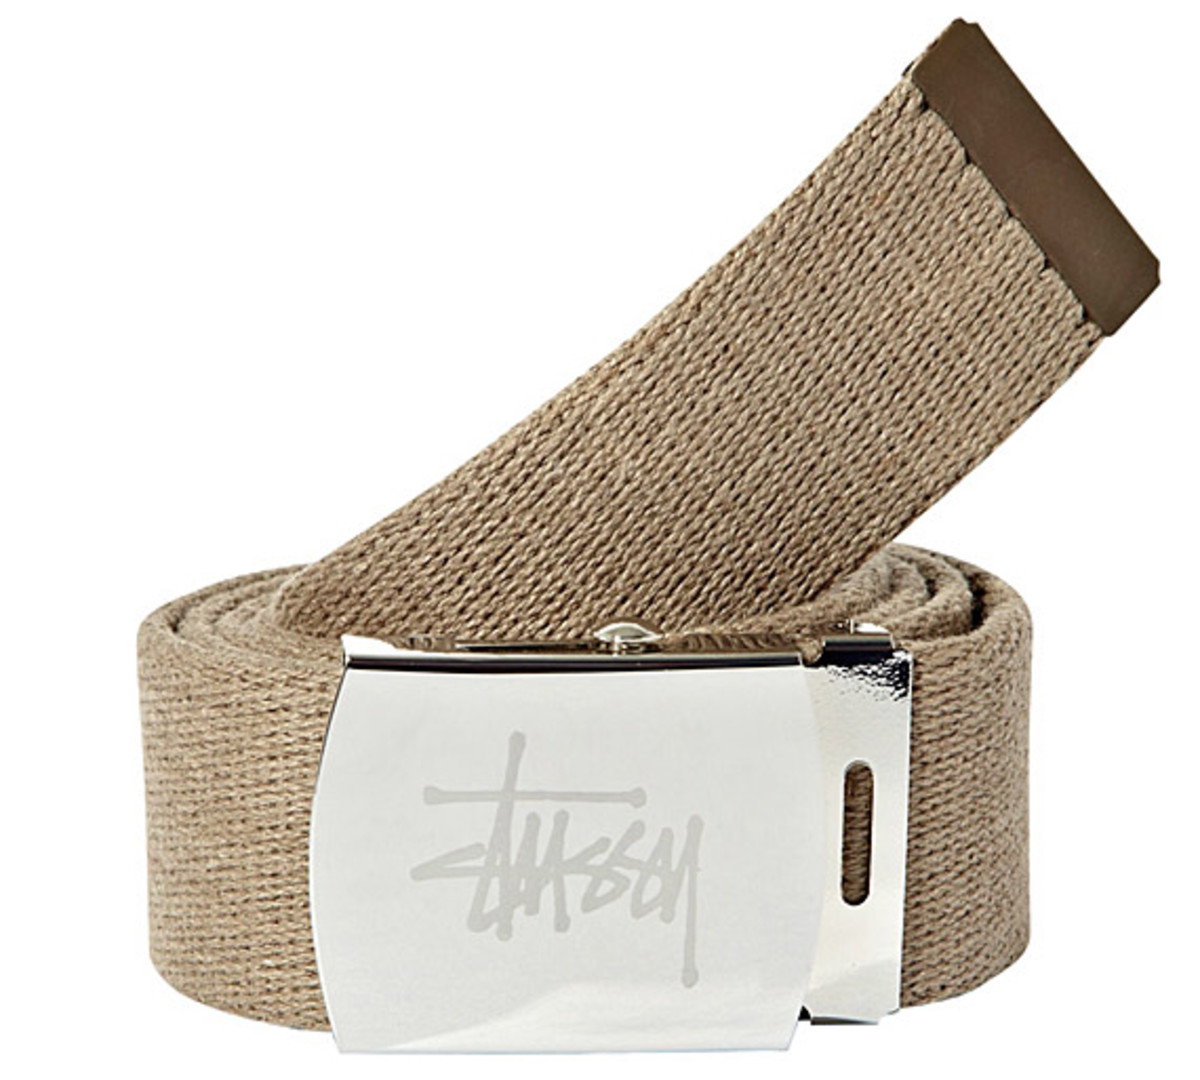 stussy-summer-camo-tipped-stock-web-belt-02